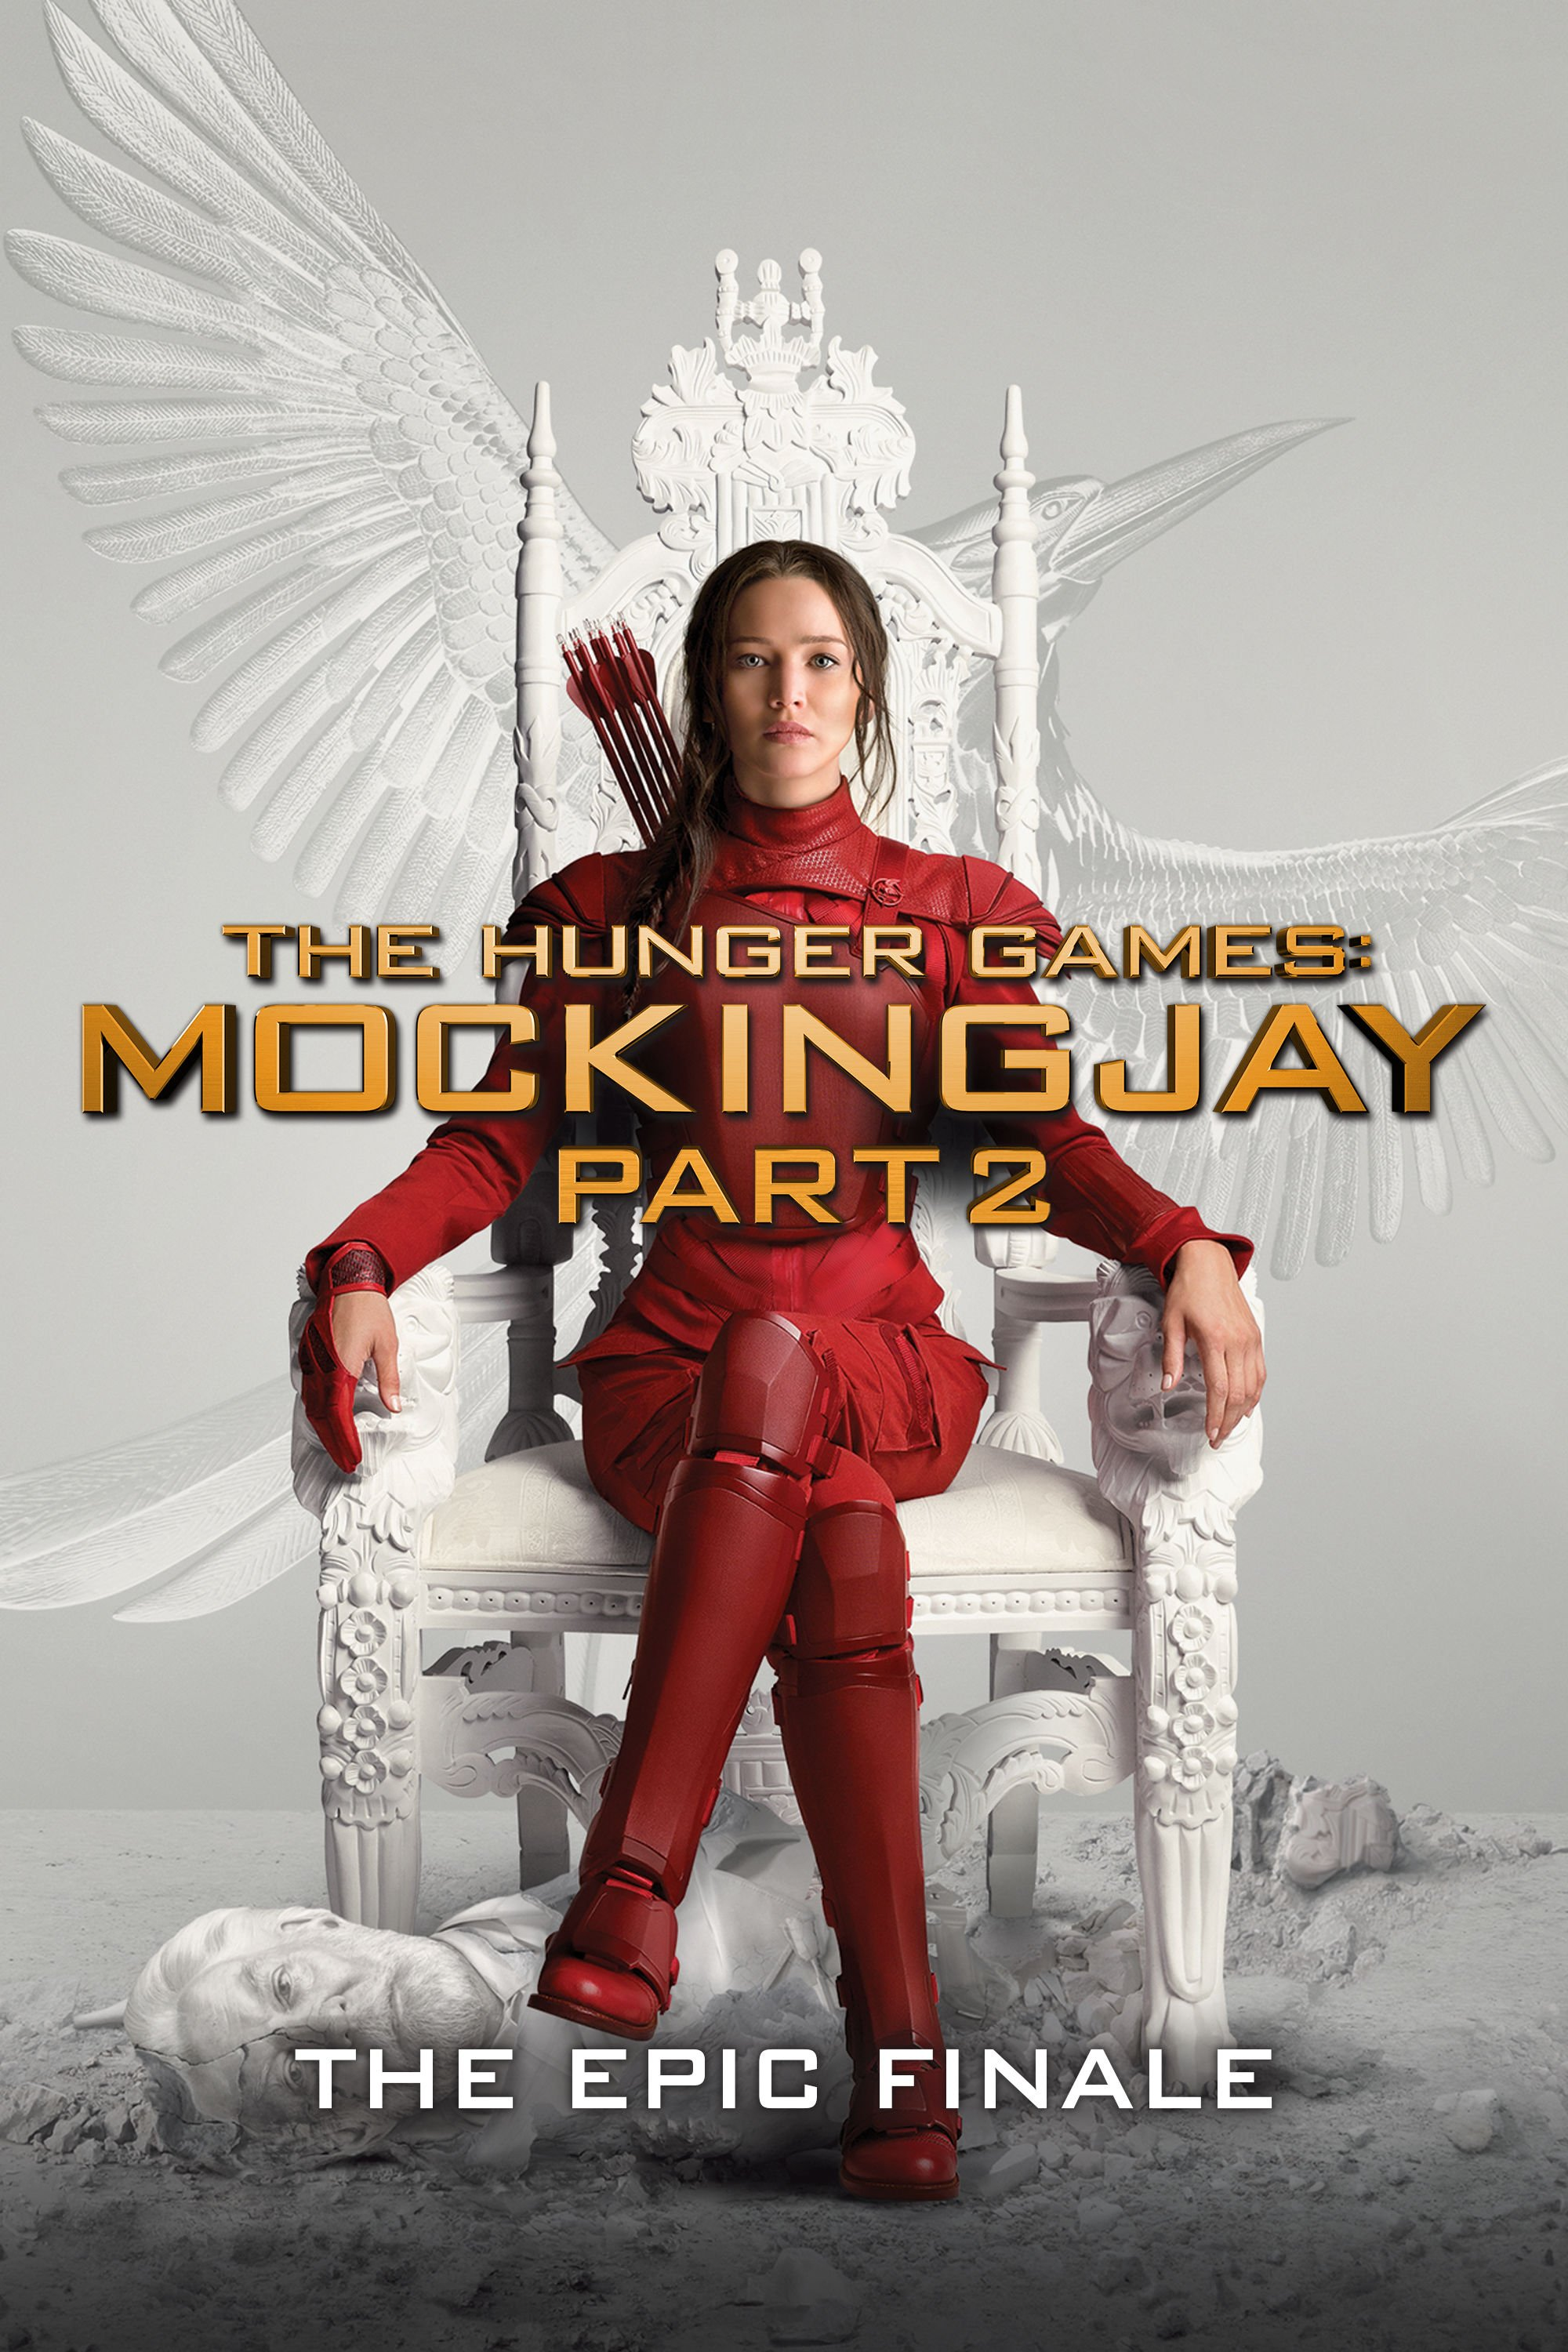 the-hunger-games-mockingjay-part-2-filming-locations-poster